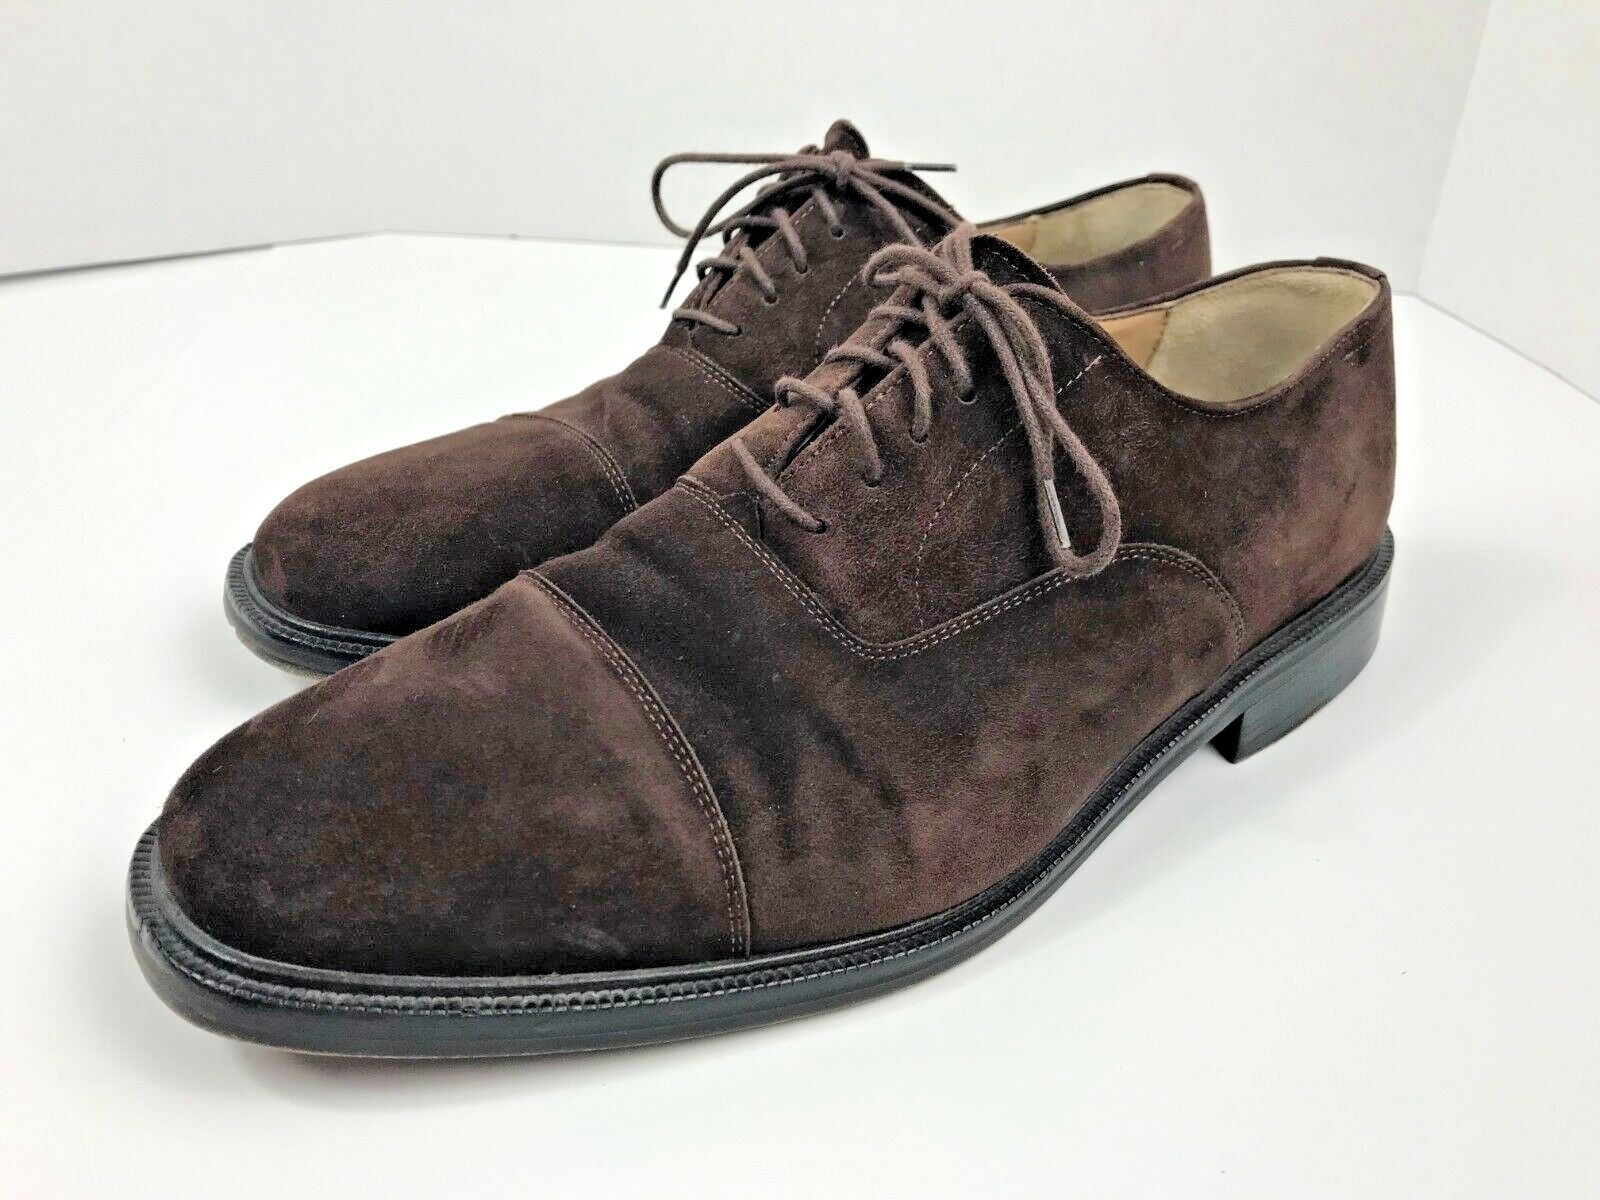 SANDRO MOSCOLONI BROWN SUEDE LEATHER OXFORD MEN'S 10 M SHOES EUC MADE IN SPAIN